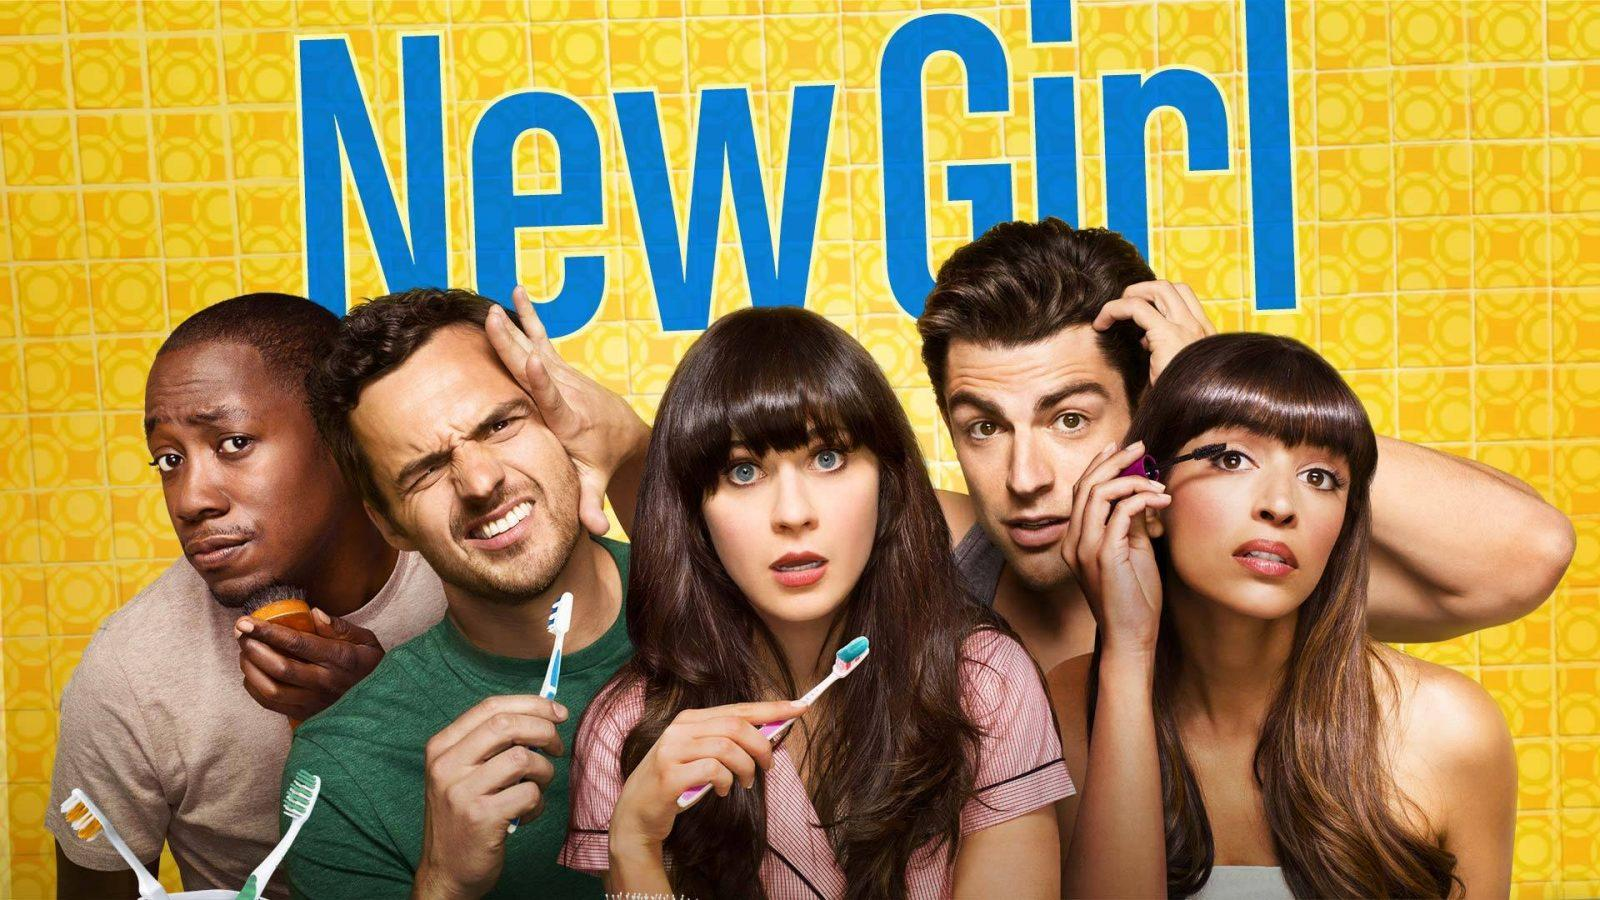 Stream It While You Can: One of Fox's Best Comedies, New Girl